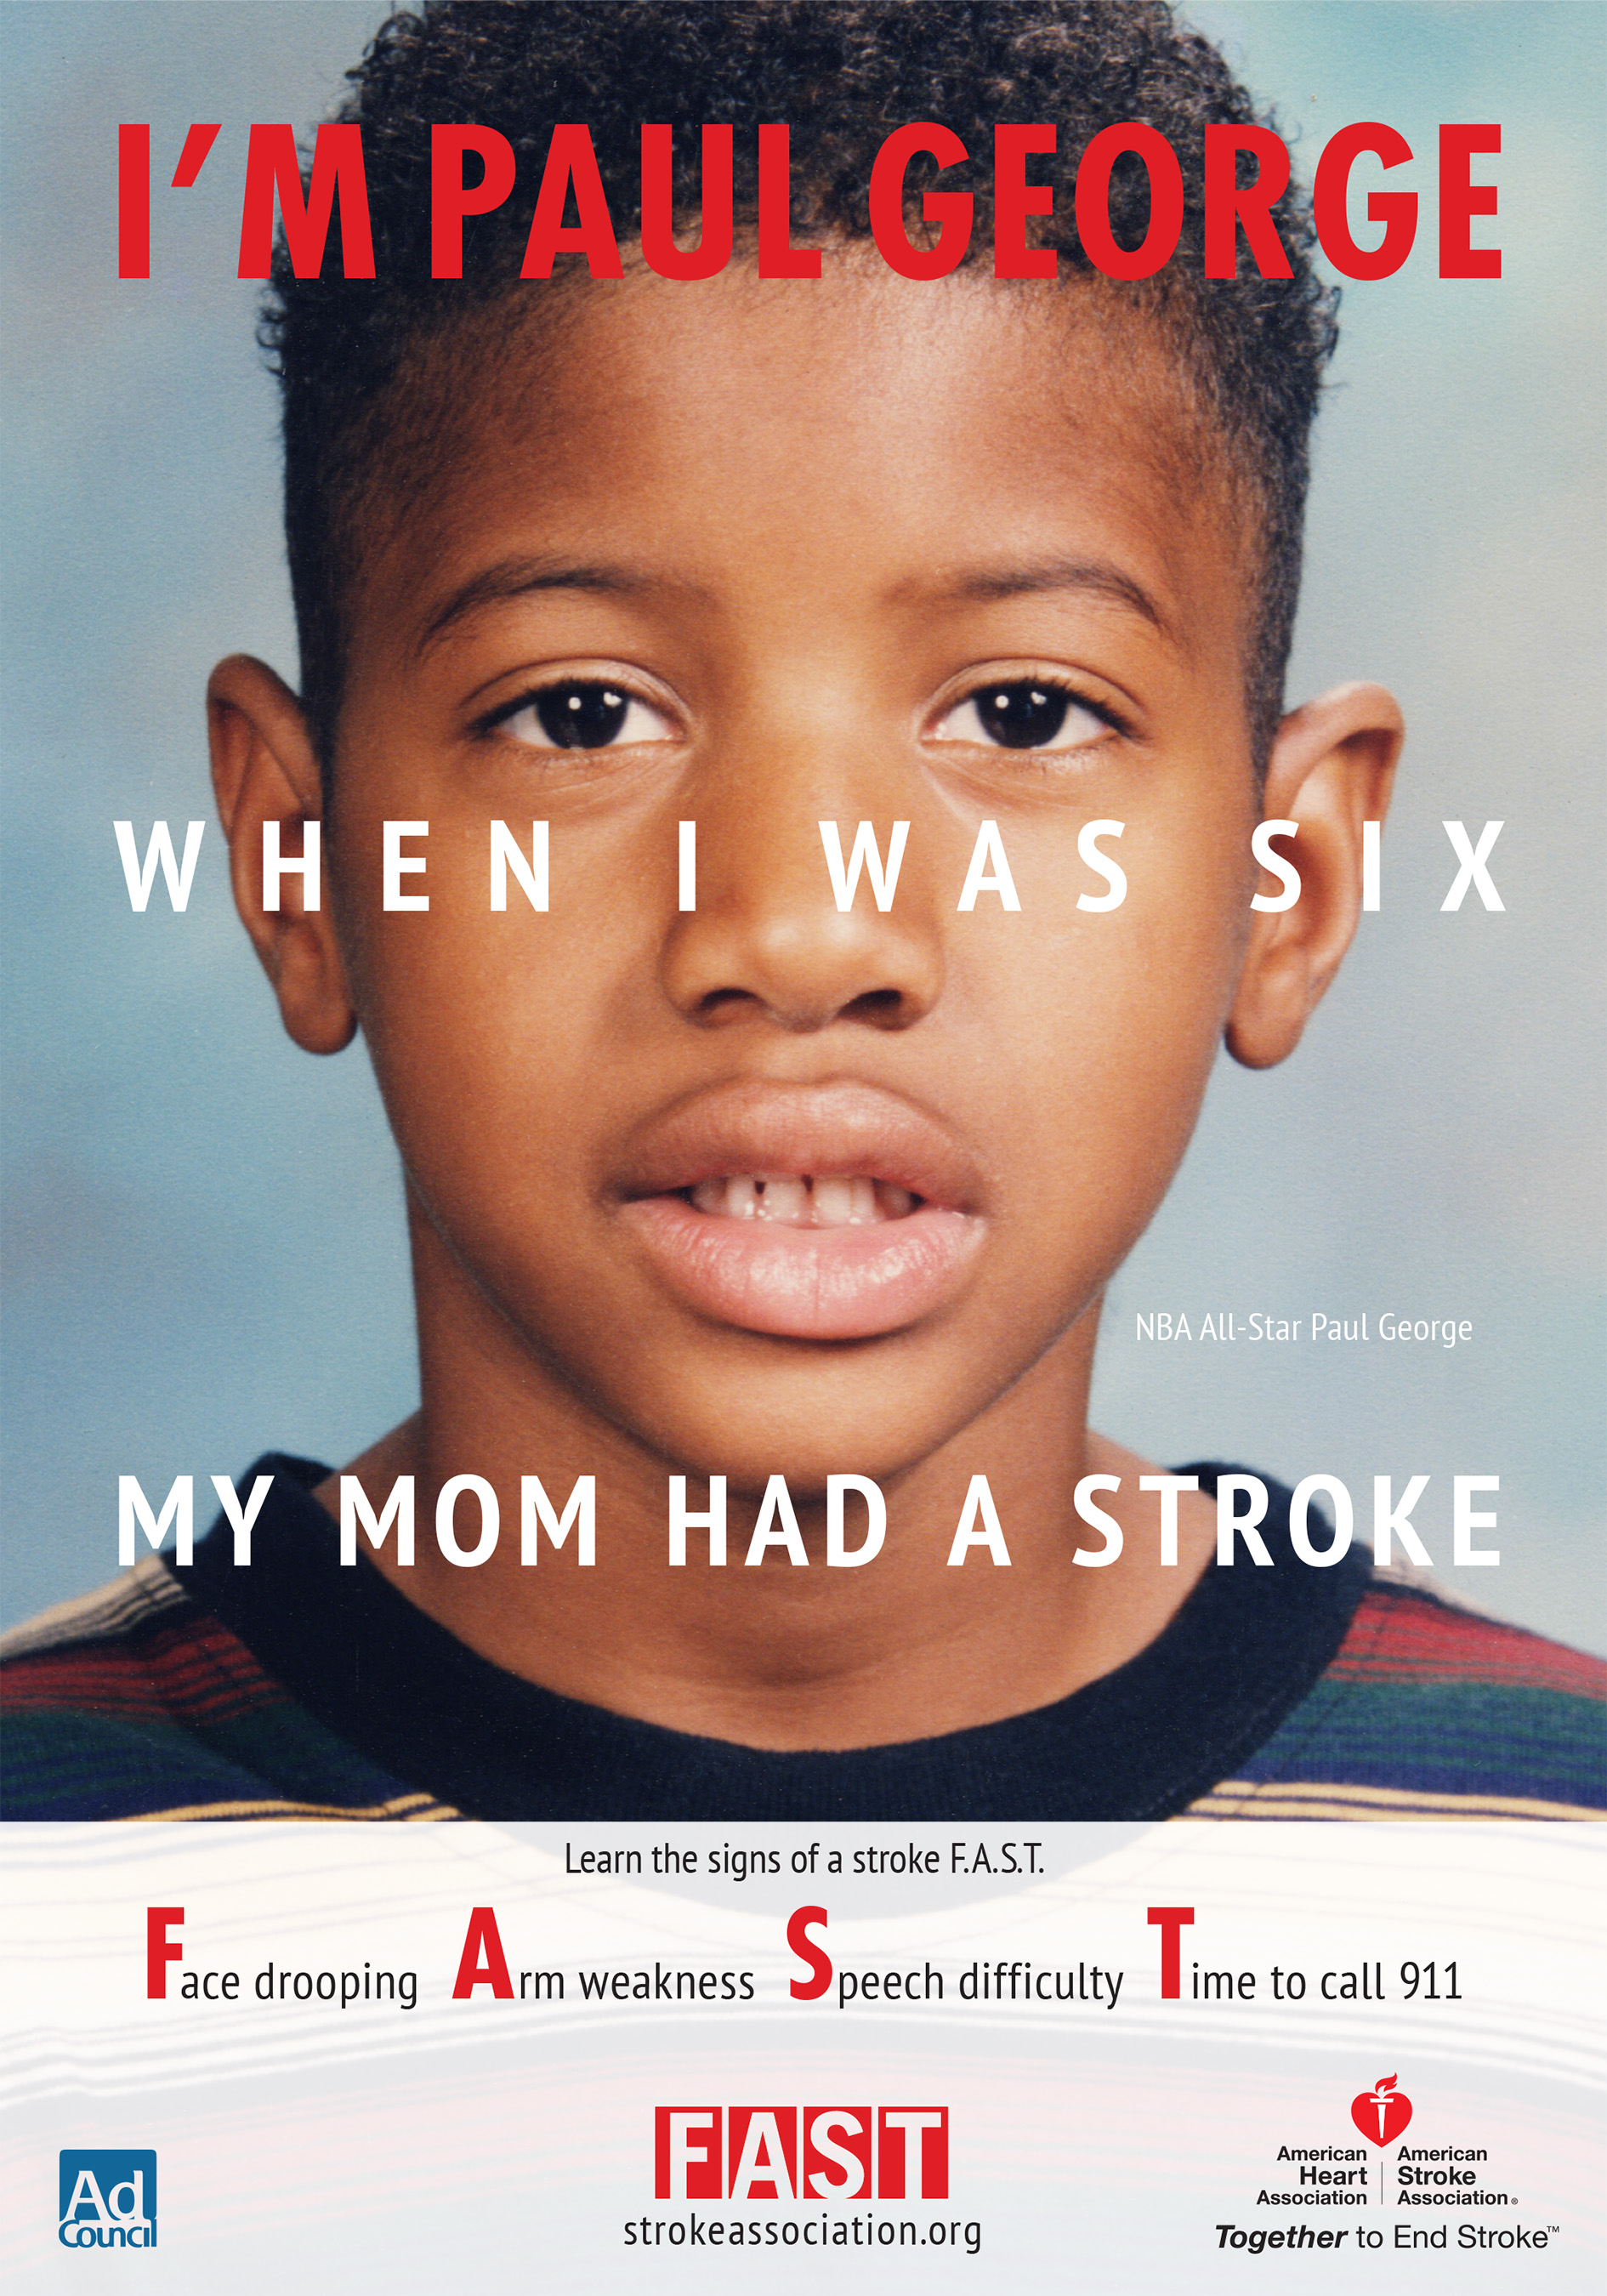 NBA All-Star Paul George Teams Up with American Stroke Association on Stroke Warning Sign PSAs